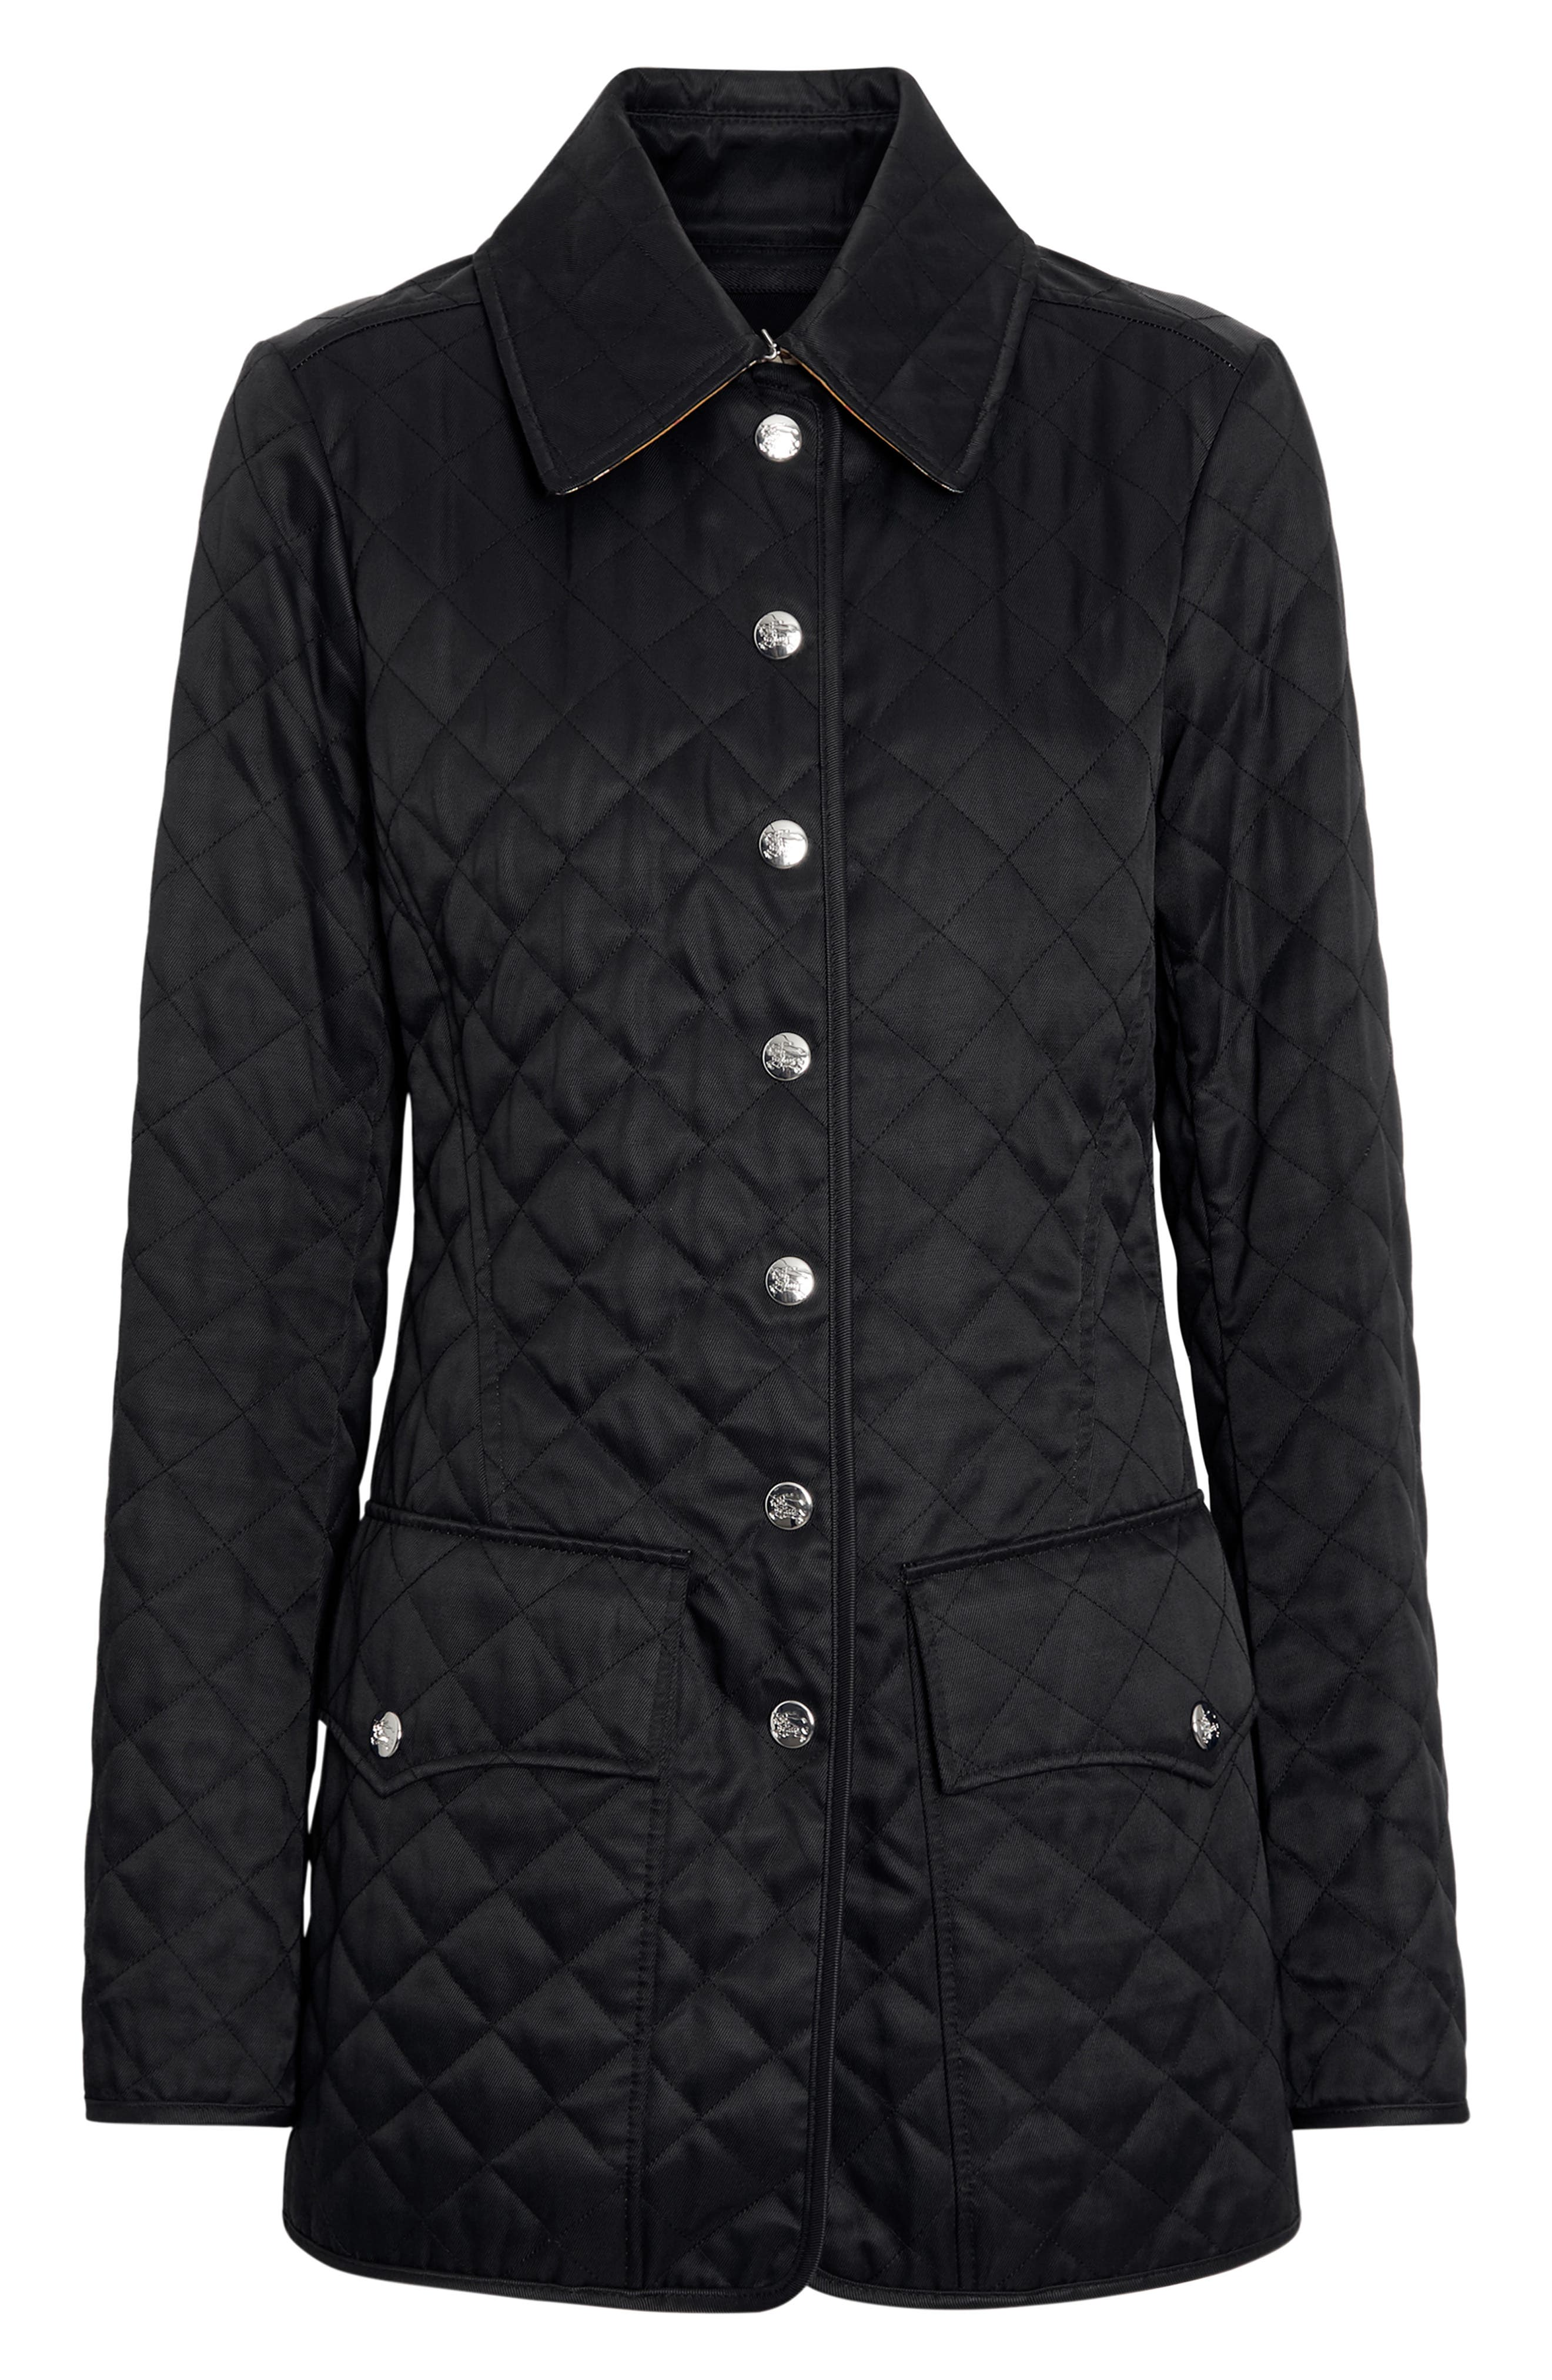 BURBERRY,                             Borthwicke Quilted Jacket,                             Alternate thumbnail 5, color,                             BLACK